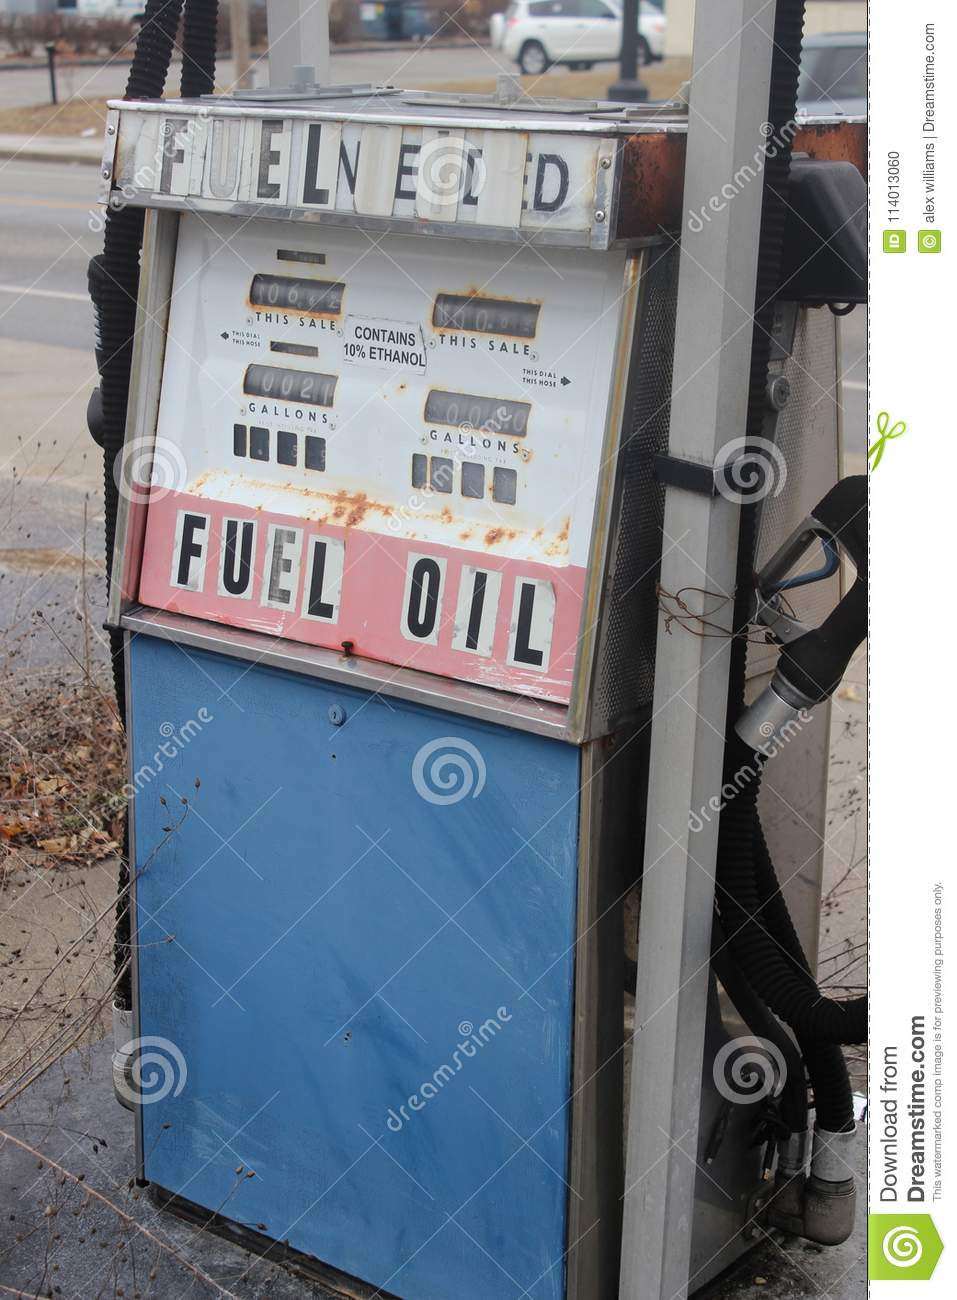 Abandoned Gas Station With Old Rusty Pumps Stock Photo Image Of Rural Fuel 114013060